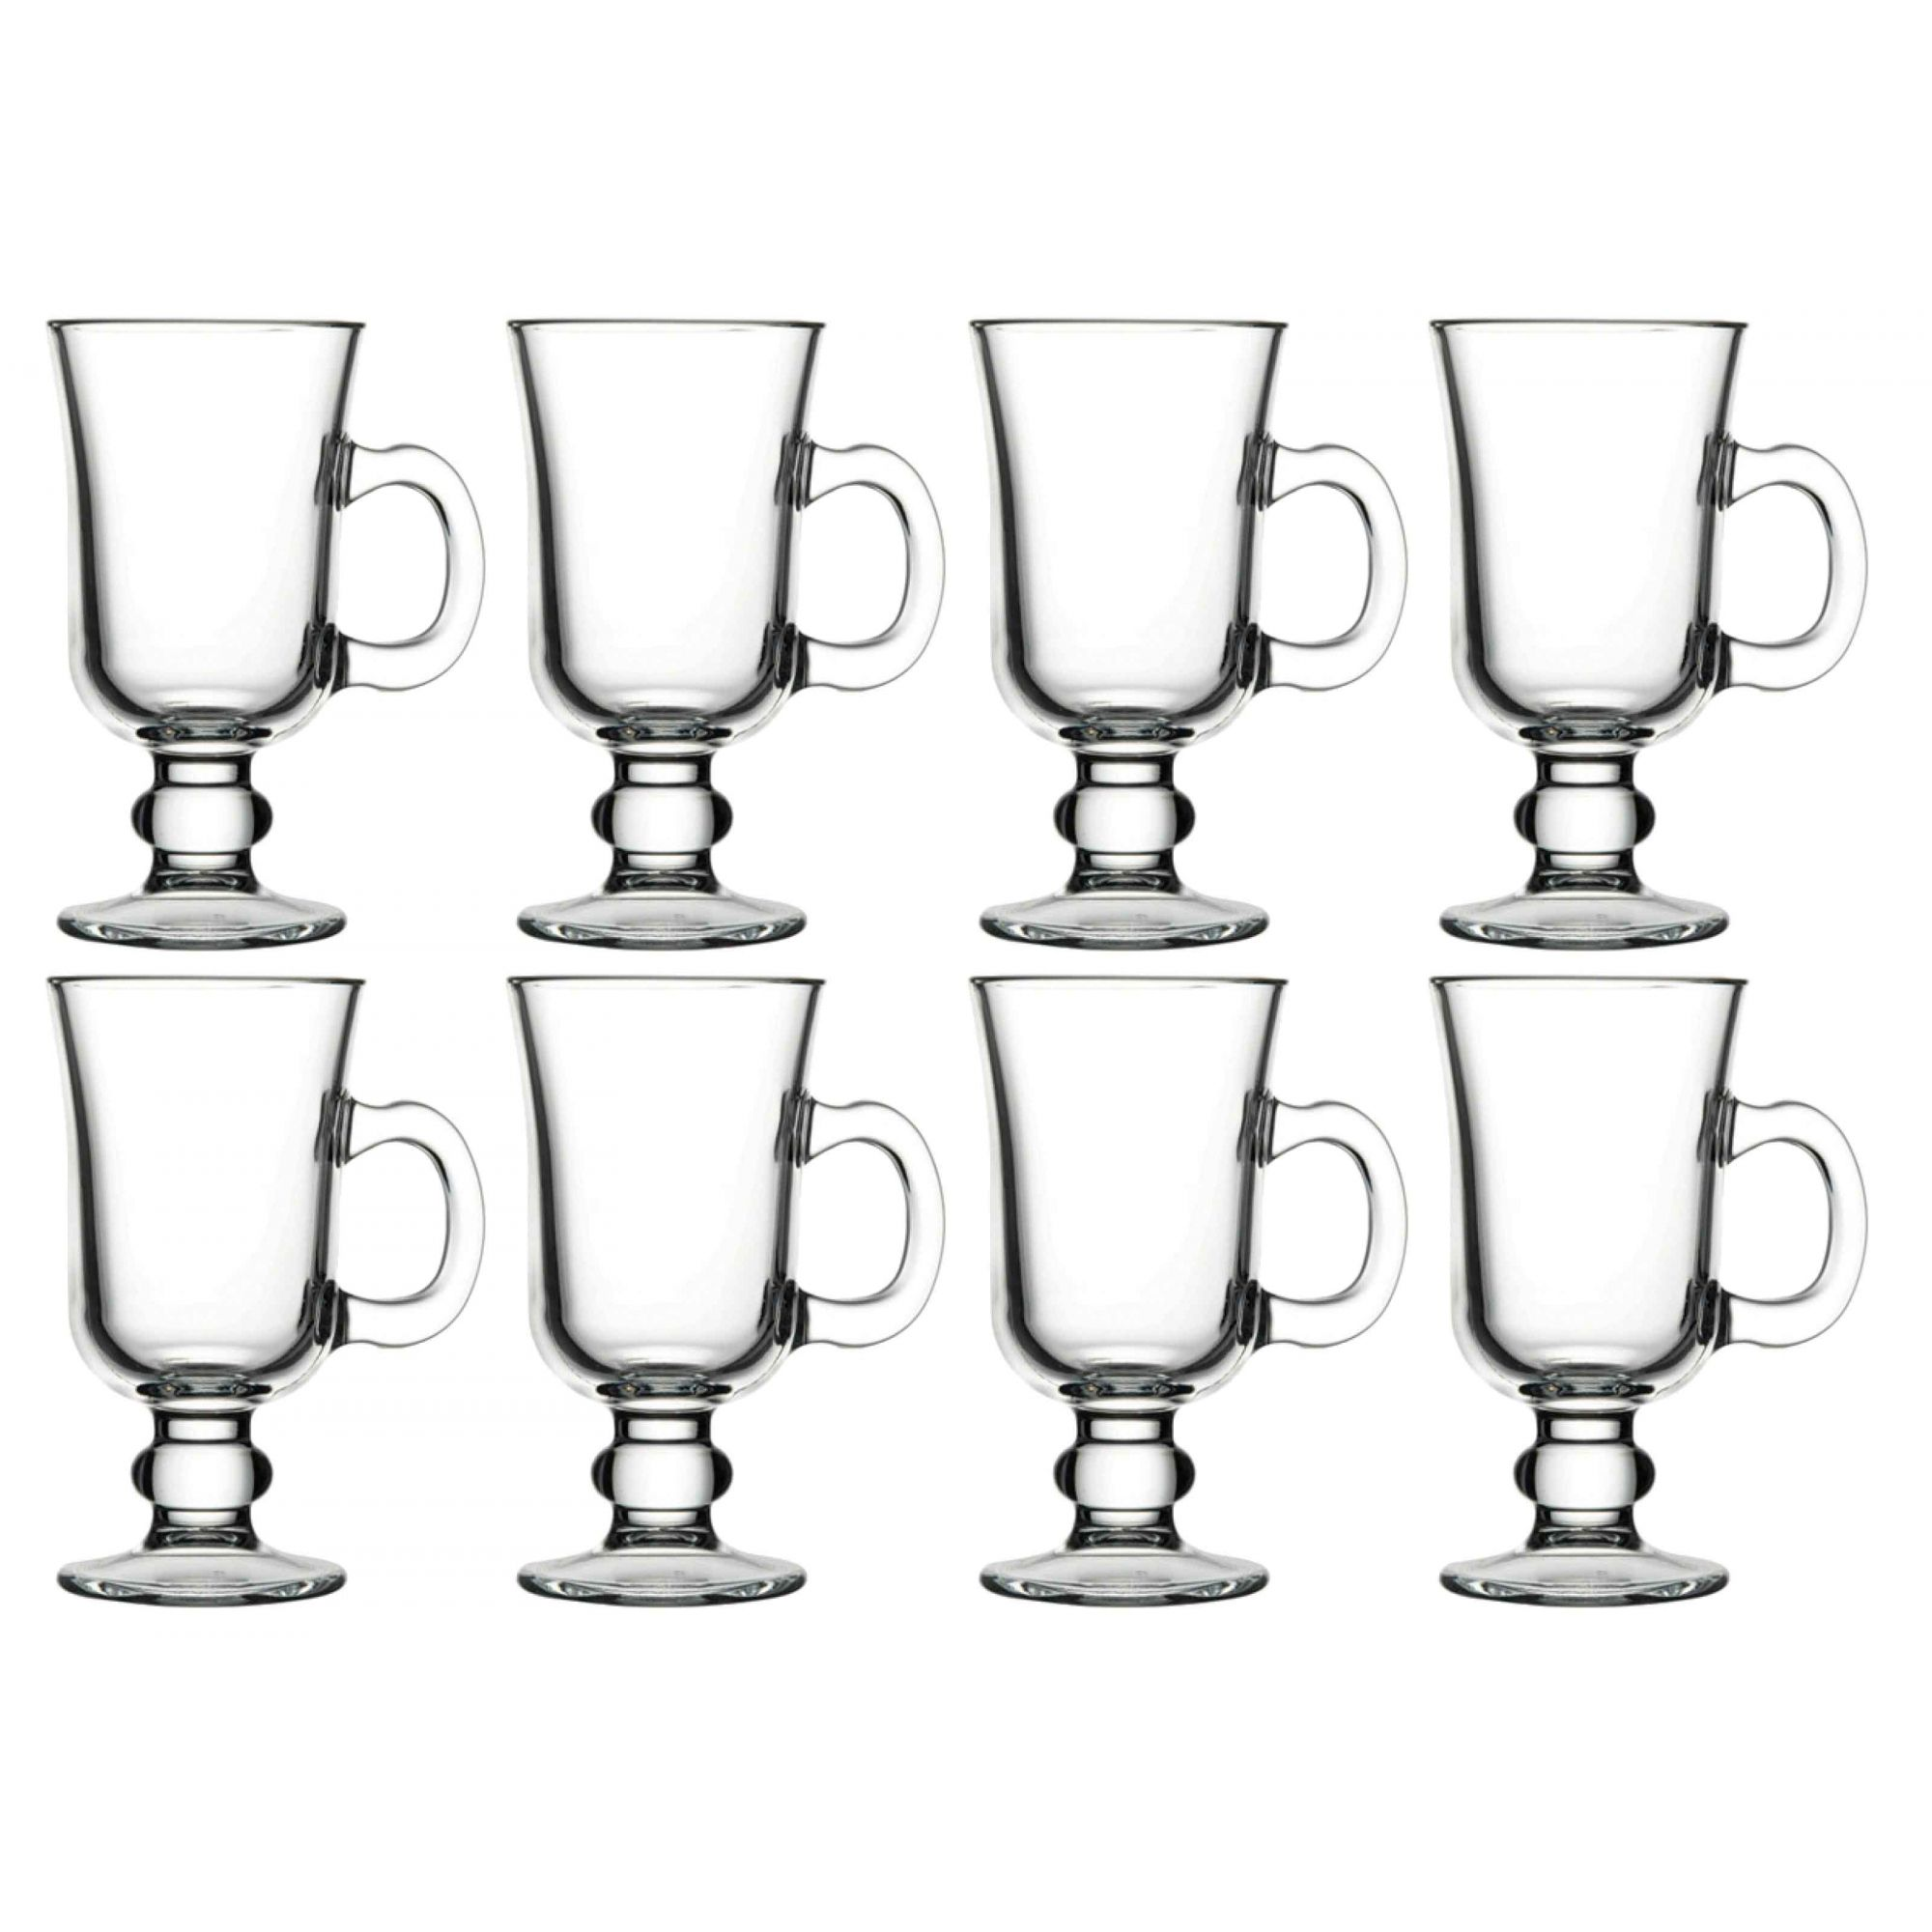 8 TAÇA CANECA IRISH COFFEE 230 ML Pasabahçe